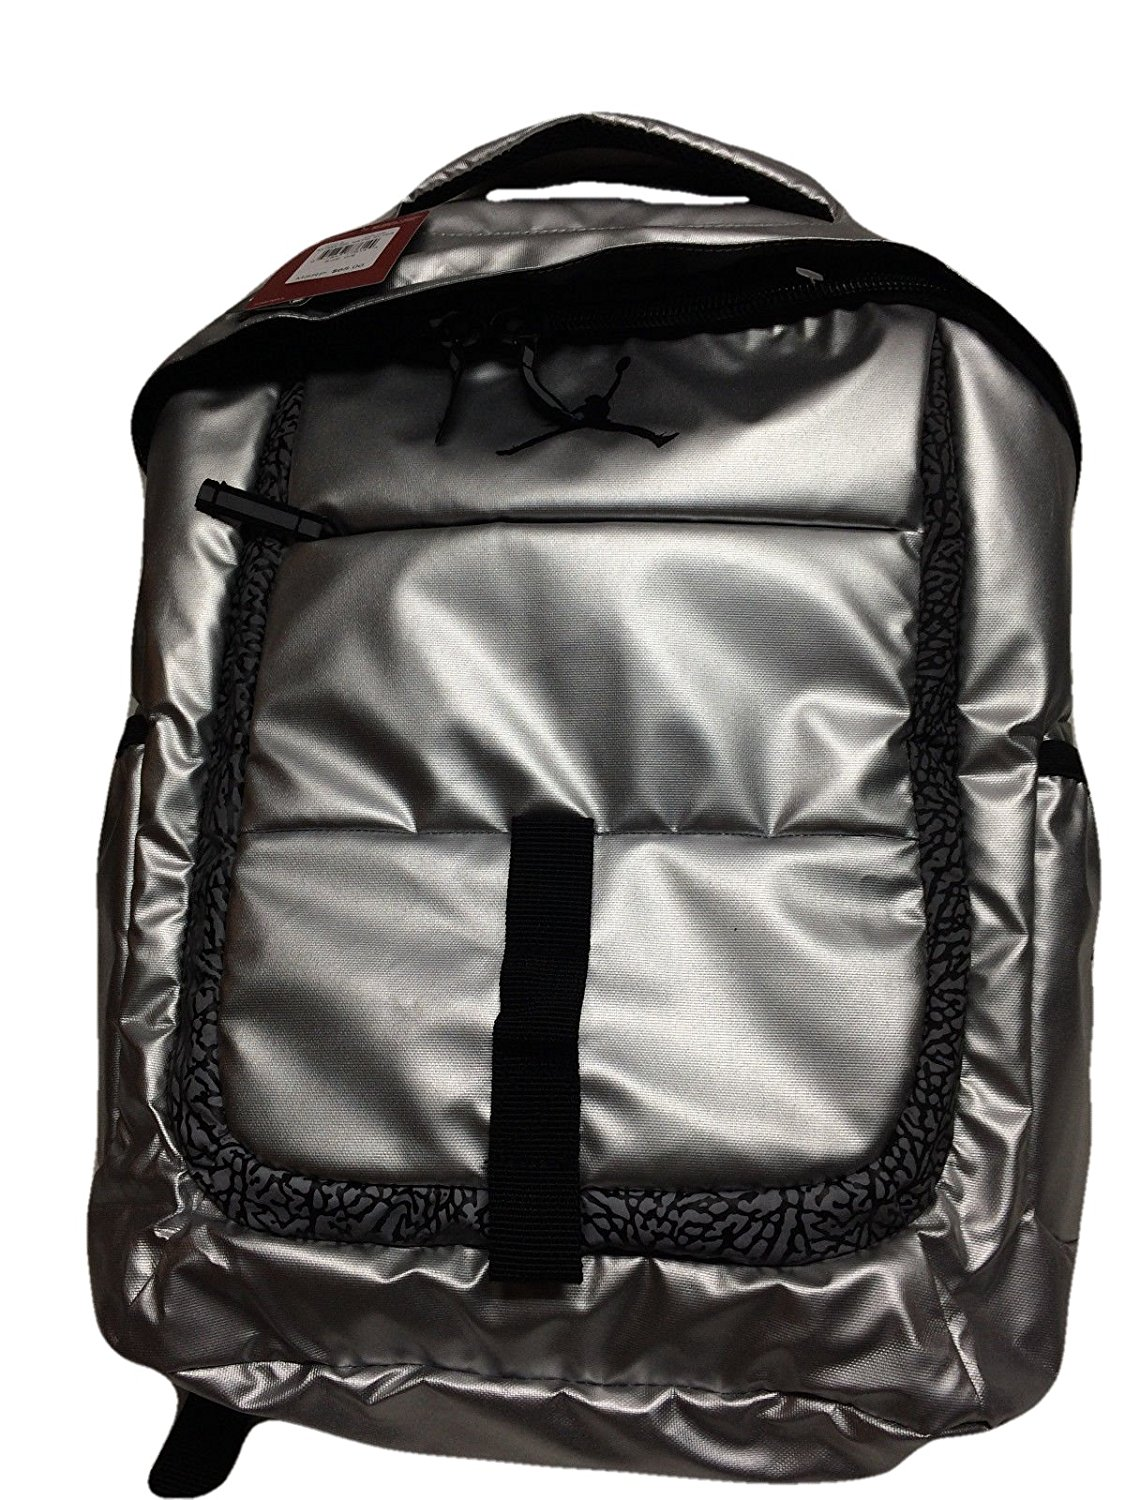 b17e599cb66 Get Quotations · Nike Air Jordan Silver Laptop Backpack Bag for Men, Women  and Boys